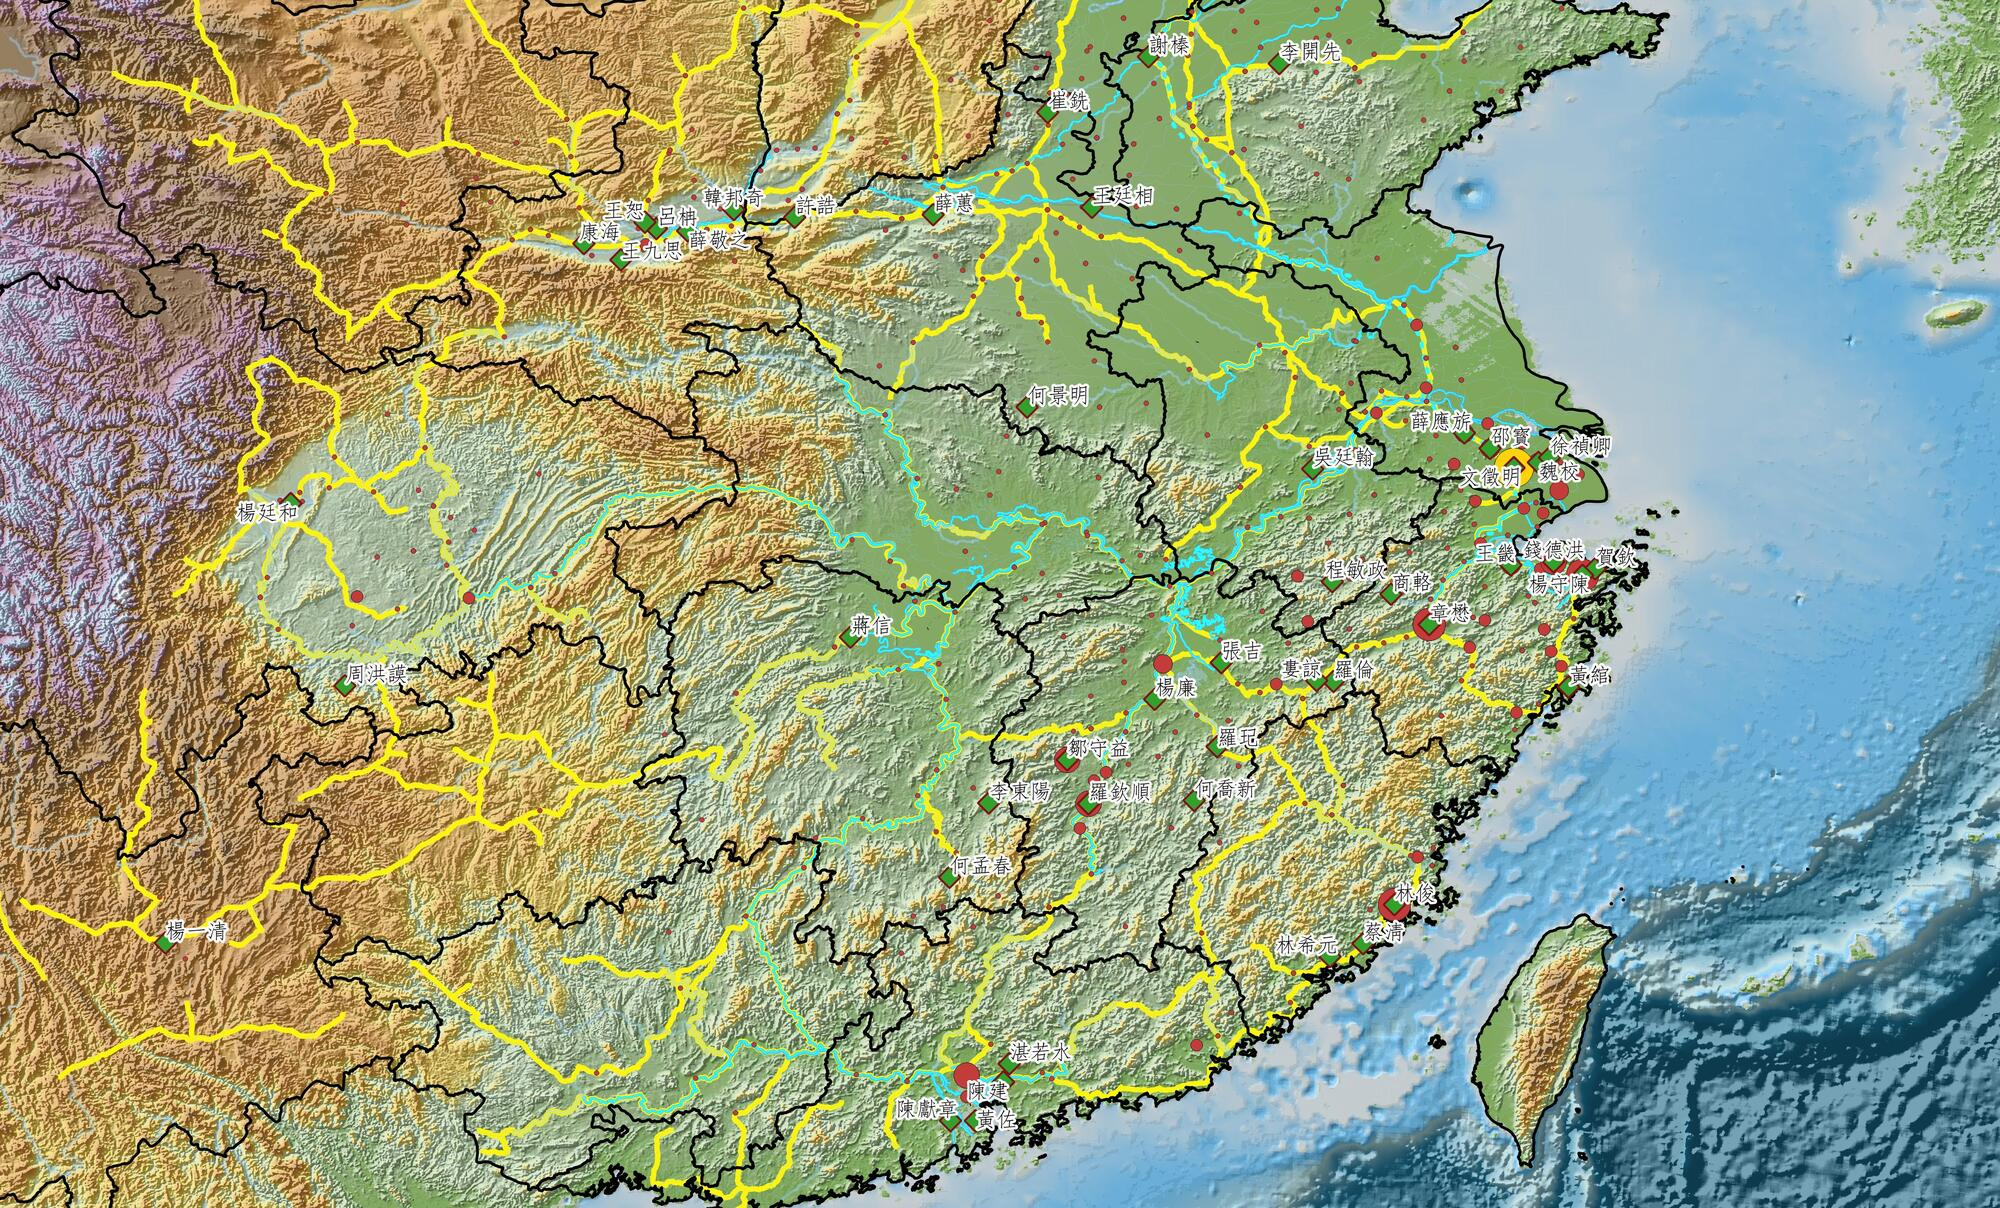 topographical map of china with multi-colored lines drawn on it